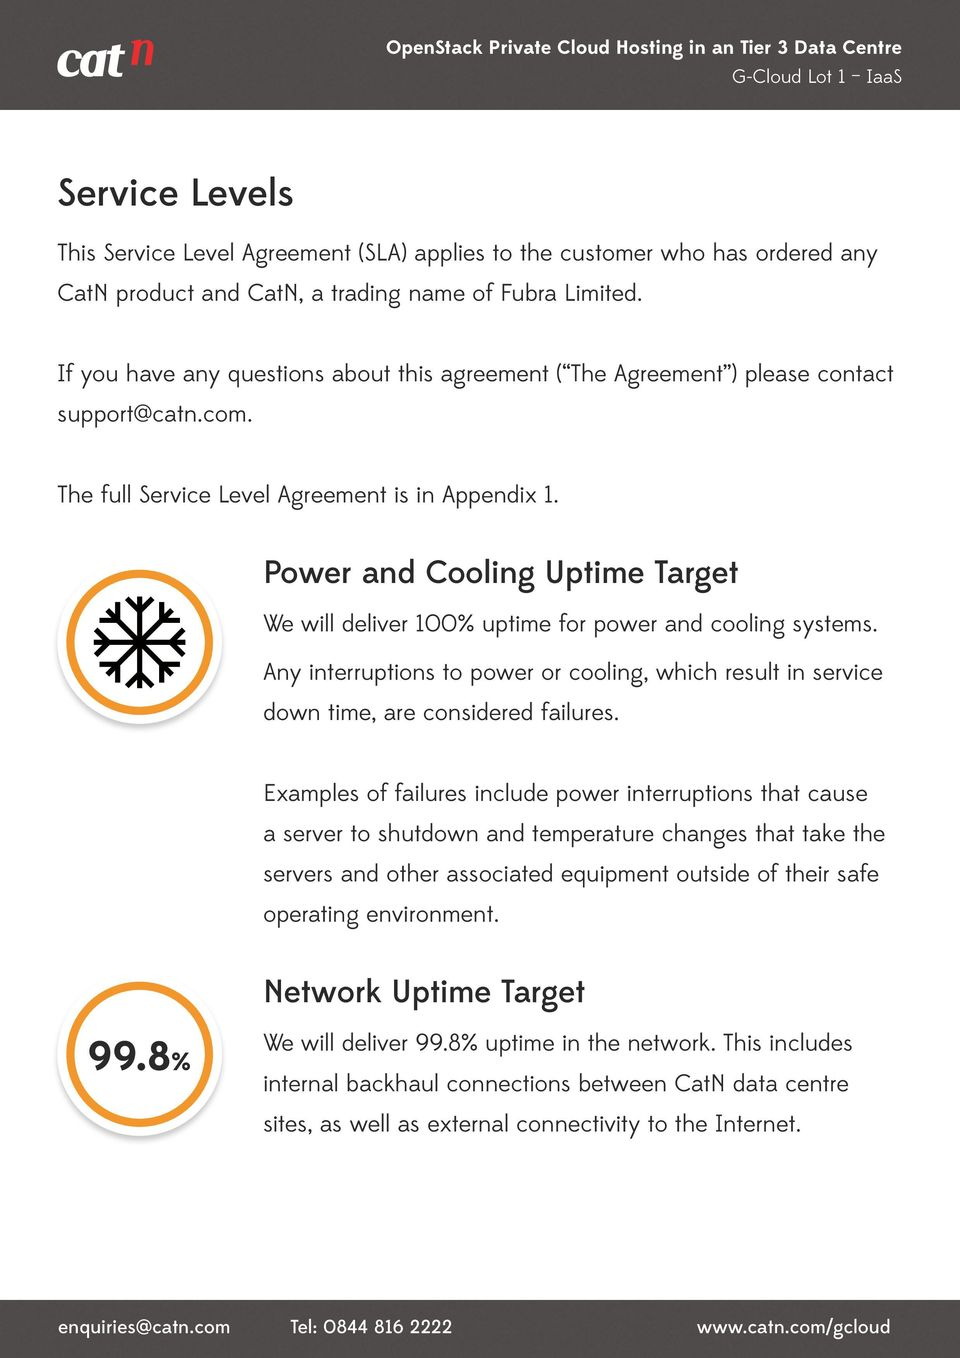 Power and Cooling Uptime Target We will deliver 100% uptime for power and cooling systems. Any interruptions to power or cooling, which result in service down time, are considered failures.